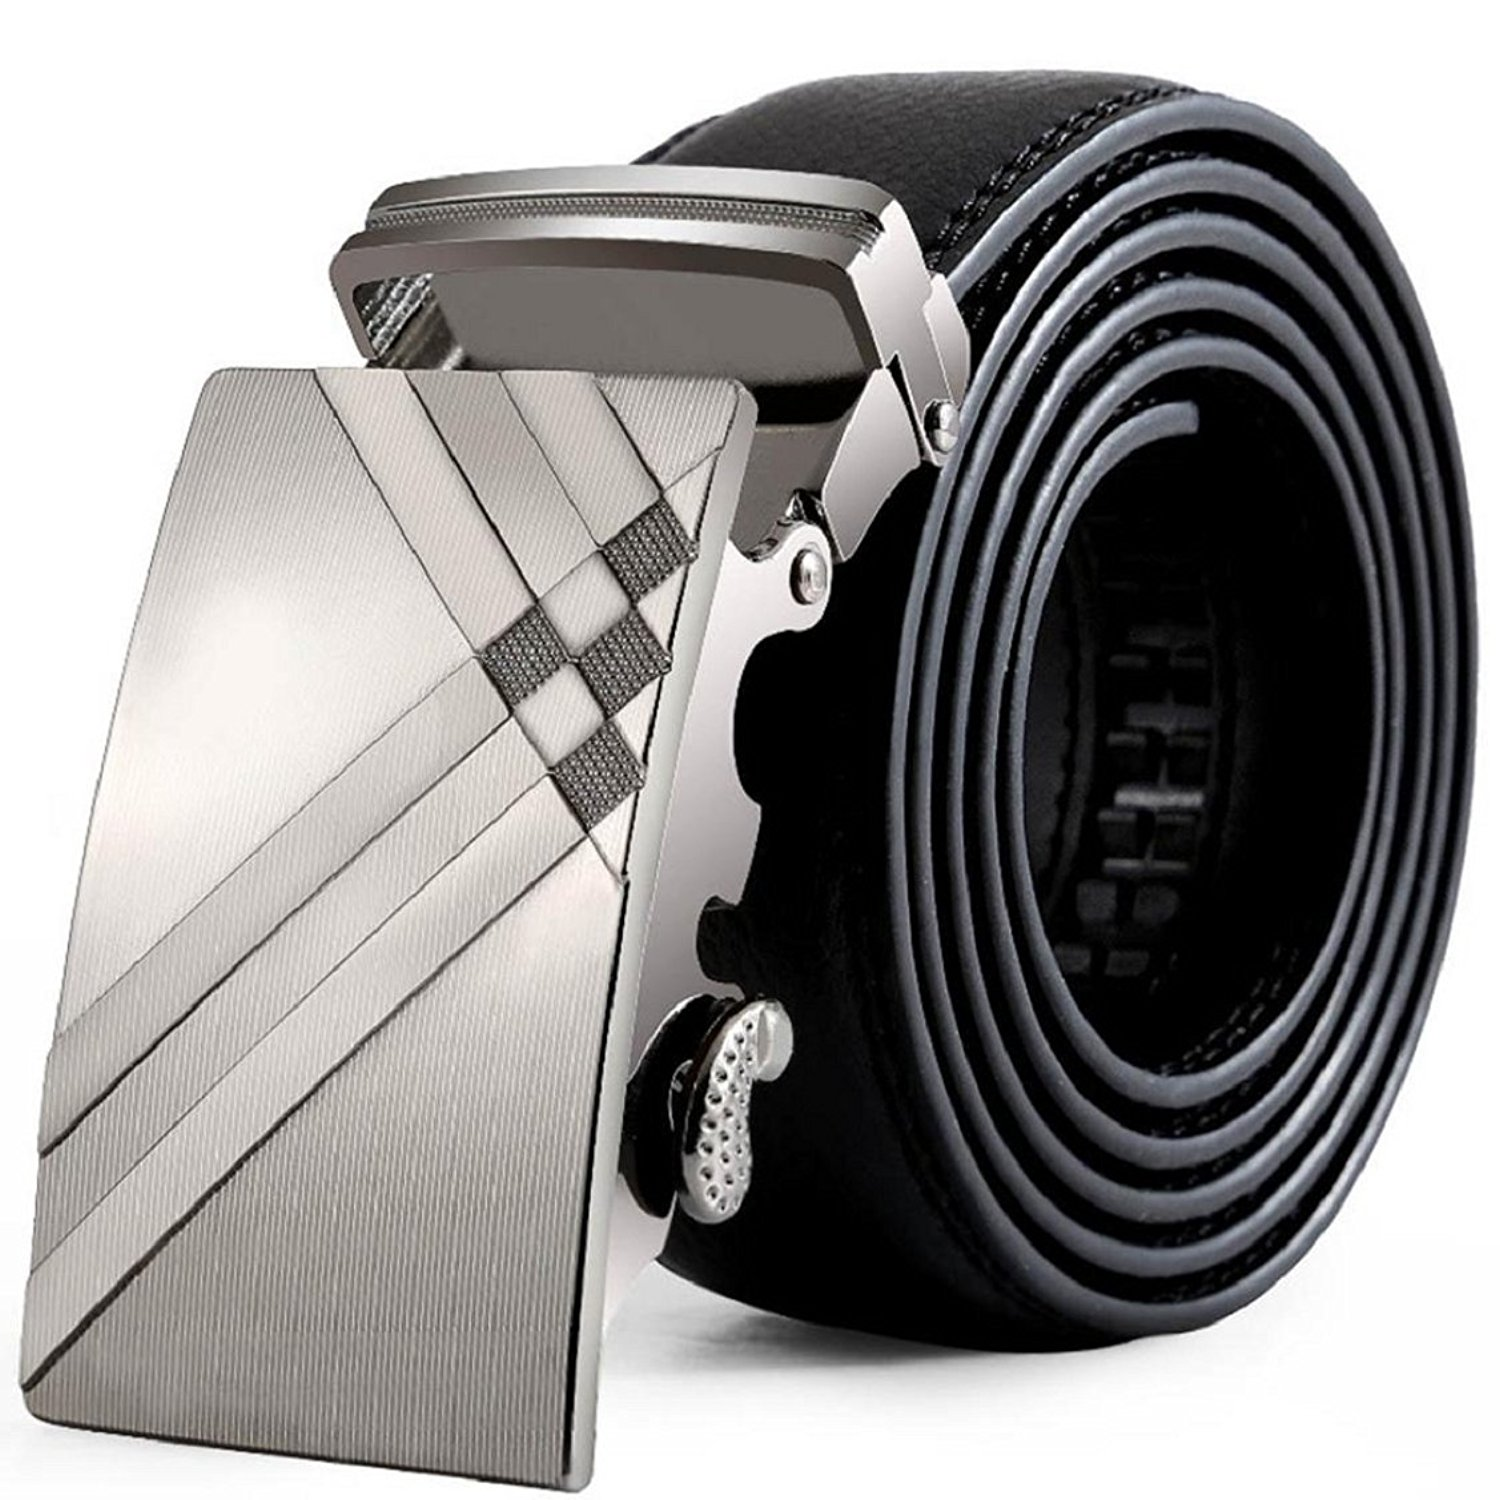 Vovomay Men's 125cm Leather Adjustable Waist Strap Belt with Automatic Buckle